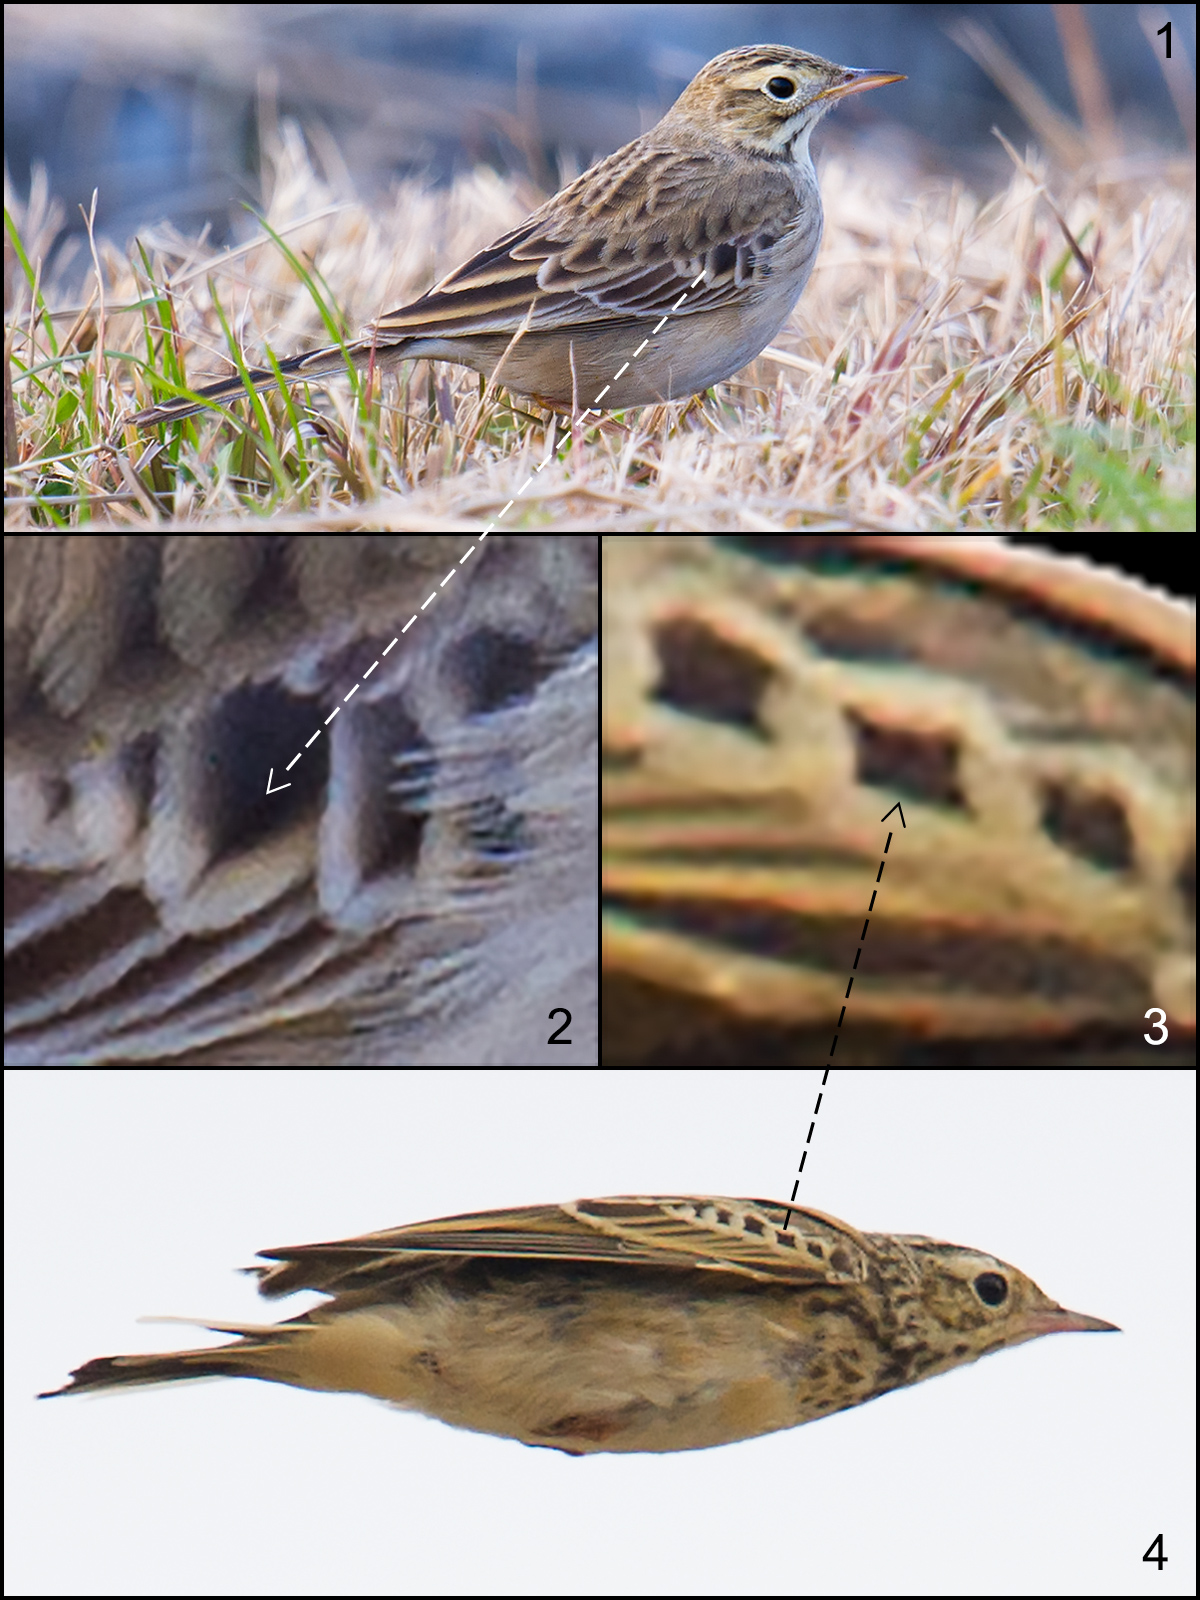 "Comparison of Richard's Pipit Anthus richardi ""sinensis"" (1) and Blyth's Pipit A. godlewskii (4). The putative taxon sinensis occurs in SE China S of the Yangtze and is the smallest population group within Richard's Pipit. Structurally it is similar to Blyth's Pipit. Note however the blackish centers to the median coverts (2, 3). In Richard's (2), the blackish centers are (a) diamond-shaped and (b) a bit fuzzy at the edges. In Blyth's (3), the blackish centers are squarish and more clearly defined. For years, Shanghai birders have been looking out for extralimital Blyth's Pipit. They are extremely rare or non-existent in the area. 1, 2: Nanhui, Shanghai, China, 15 Dec. 2016. 3, 4: Hulunbeier, Inner Mongolia, China, 22 July 2015. Craig Brelsford."